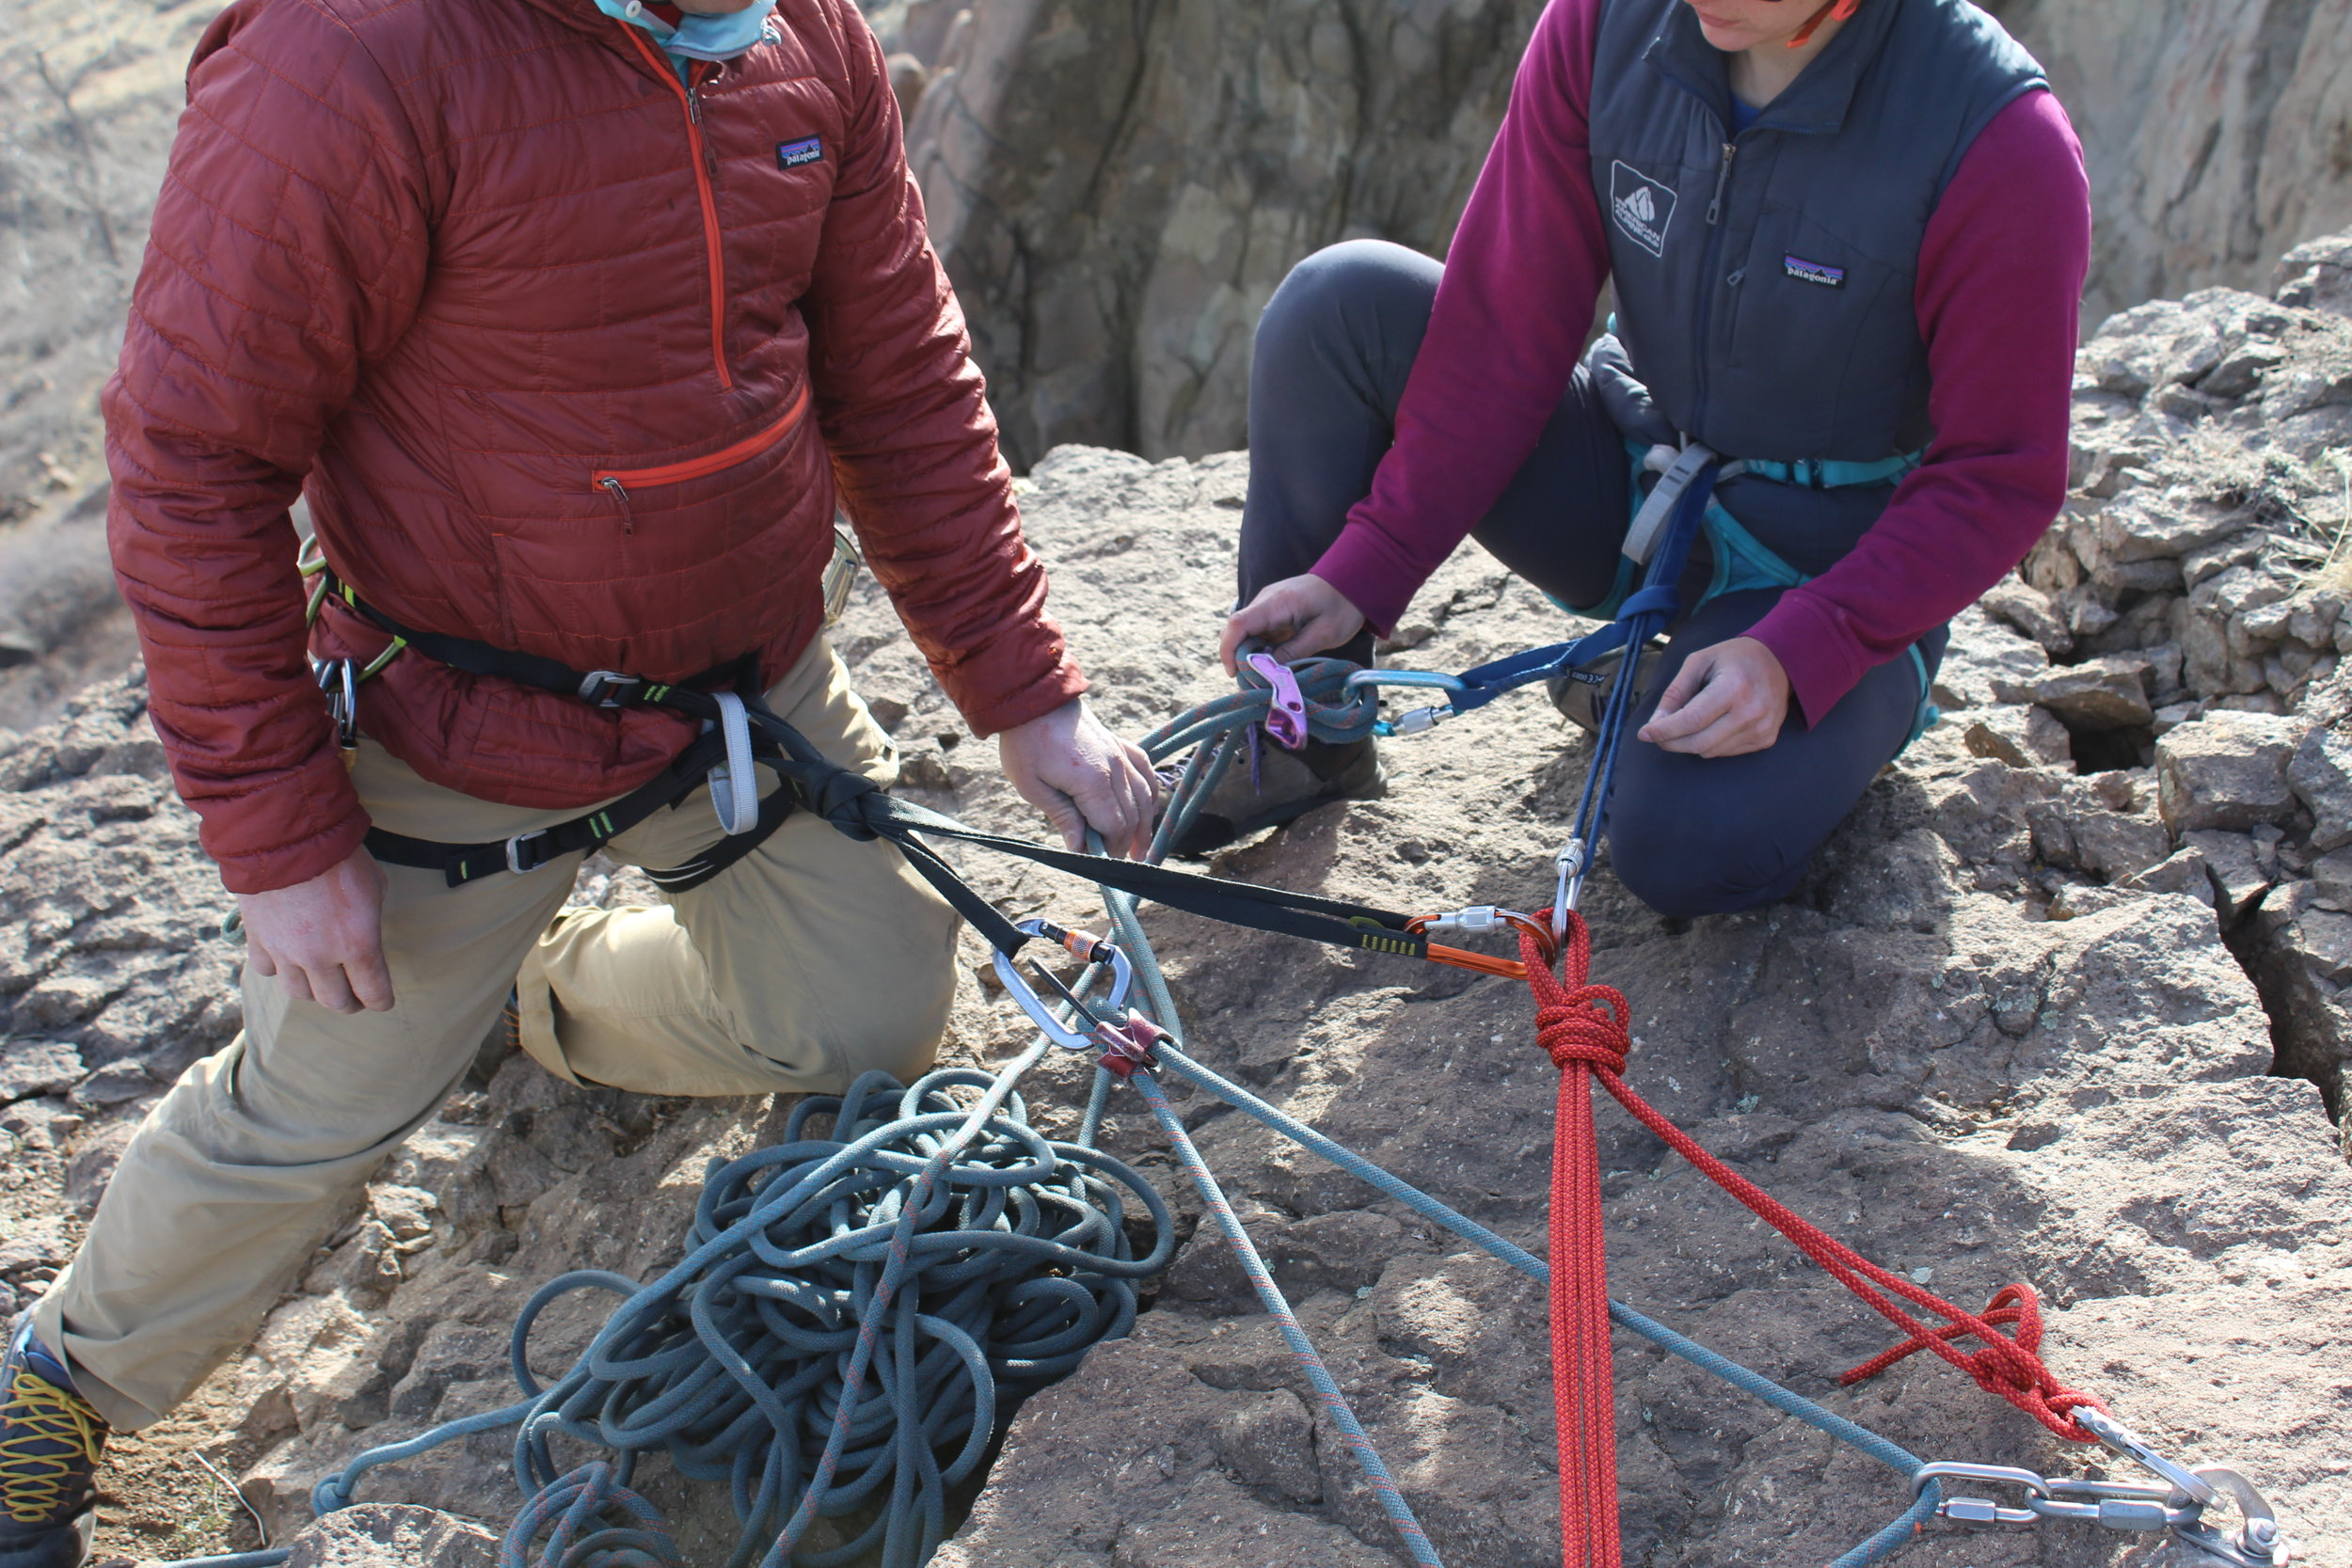 With their back turned towards a precipitous cliff's edge and their attention focused on setup tasks, these climbers are using technical security (a tether and locking carabiner) to stay secured during setup.